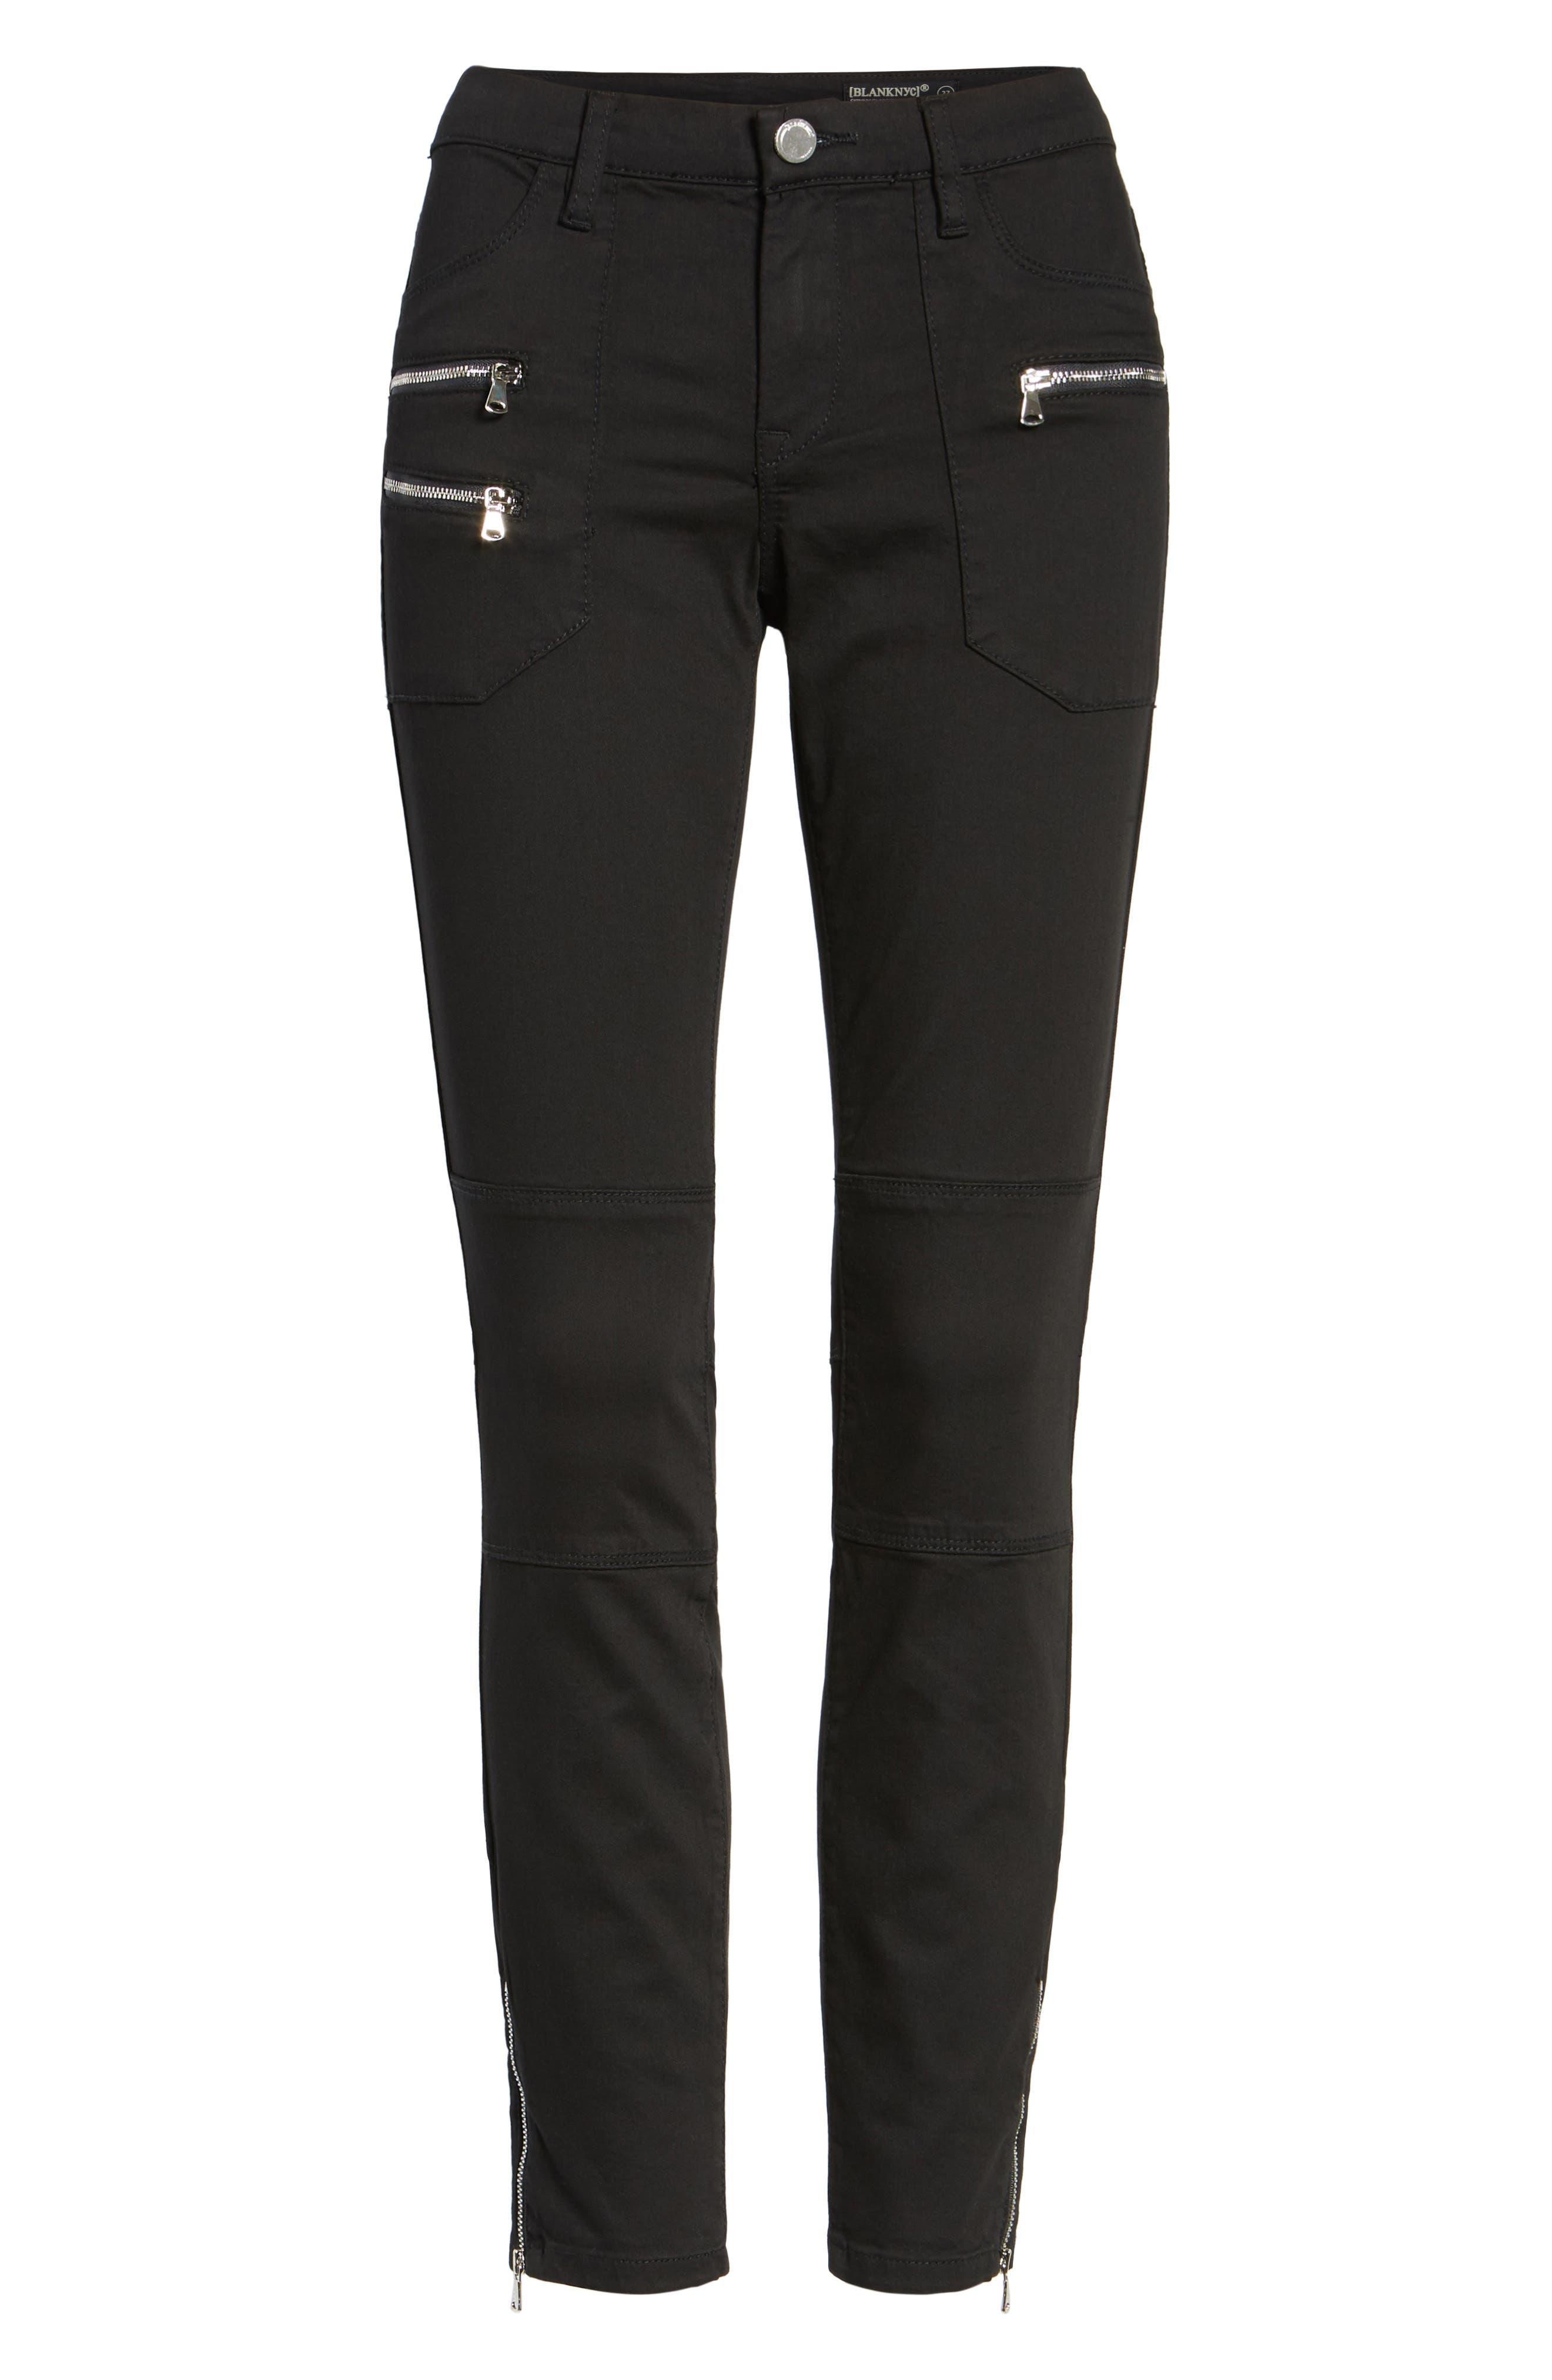 Private Party Skinny Jeans,                             Alternate thumbnail 6, color,                             001